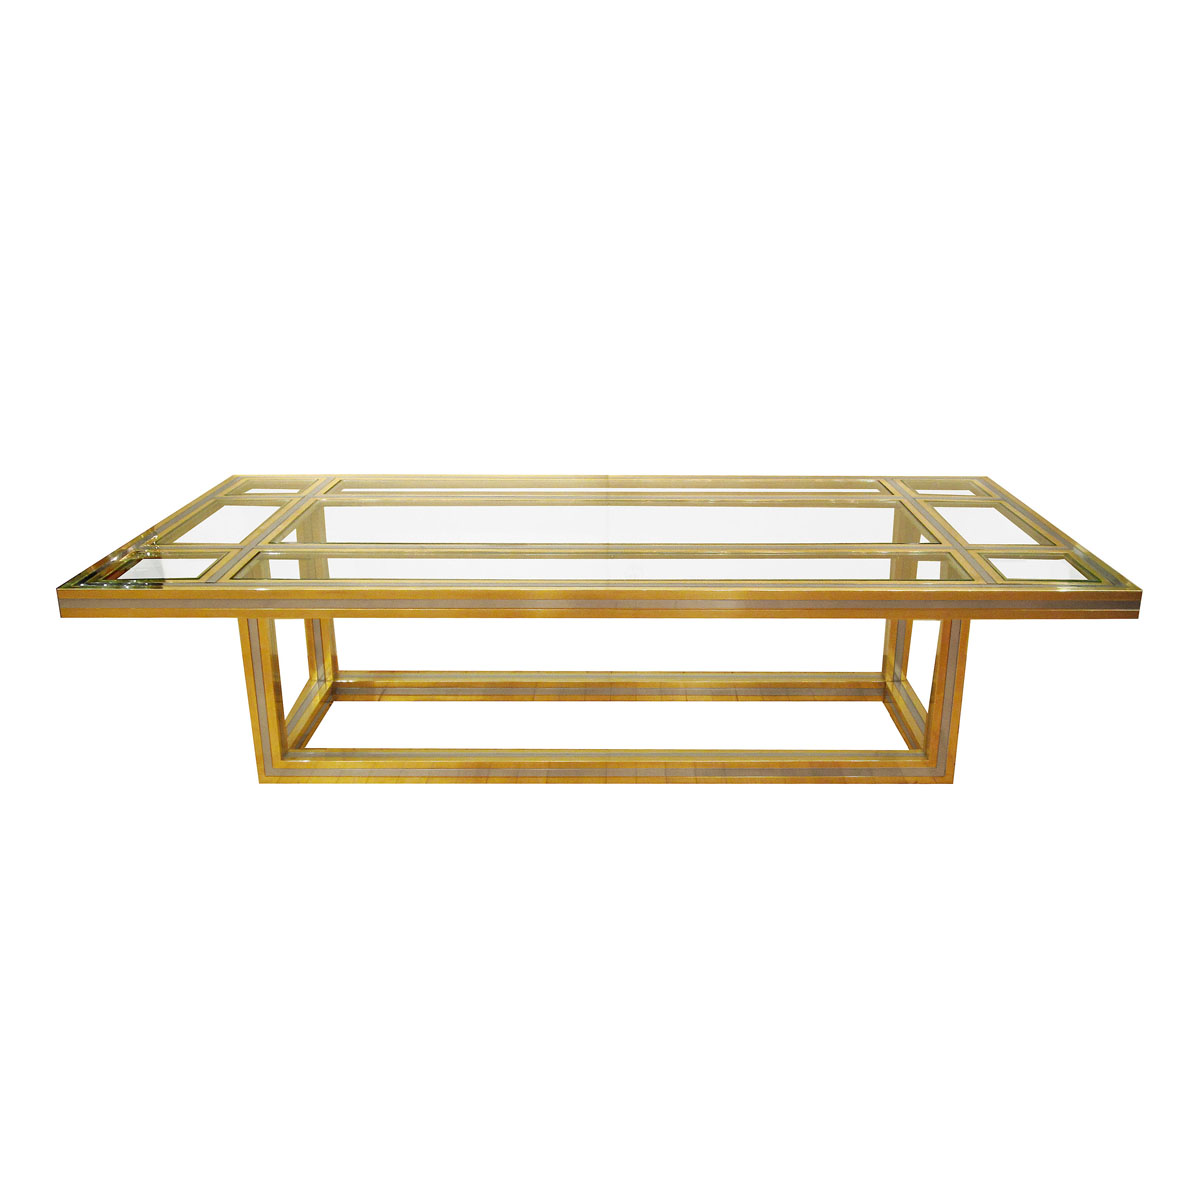 Brass and stainless steel coffee table with glass insets coffee tables john salibello Steel and glass coffee table